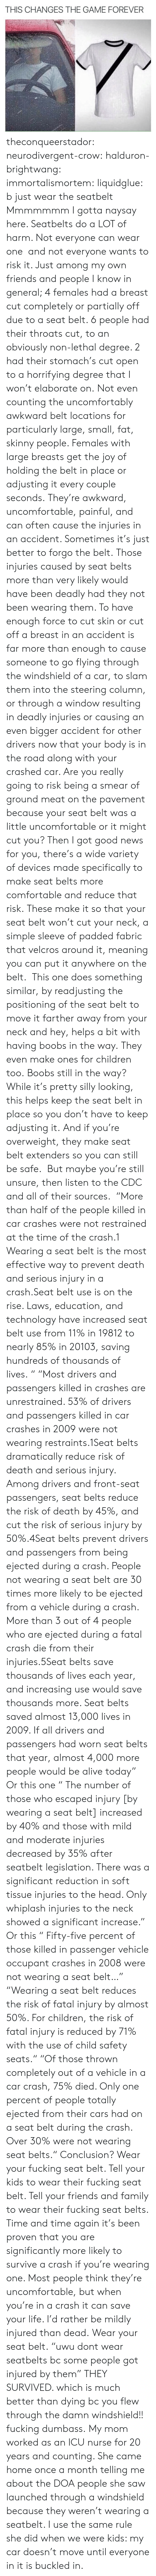 "whiplash: THIS CHANGES THE GAME FOREVER theconqueerstador:  neurodivergent-crow:  halduron-brightwang:  immortalismortem:  liquidglue:   b just wear the seatbelt   Mmmmmmm I gotta naysay here. Seatbelts do a LOT of harm. Not everyone can wear one  and not everyone wants to risk it. Just among my own friends and people I know in general; 4 females had a breast cut completely or partially off due to a seat belt. 6 people had their throats cut, to an obviously non-lethal degree. 2 had their stomach's cut open to a horrifying degree that I won't elaborate on. Not even counting the uncomfortably awkward belt locations for particularly large, small, fat, skinny people. Females with large breasts get the joy of holding the belt in place or adjusting it every couple seconds. They're awkward, uncomfortable, painful, and can often cause the injuries in an accident. Sometimes it's just better to forgo the belt.  Those injuries caused by seat belts more than very likely would have been deadly had they not been wearing them. To have enough force to cut skin or cut off a breast in an accident is far more than enough to cause someone to go flying through the windshield of a car, to slam them into the steering column, or through a window resulting in deadly injuries or causing an even bigger accident for other drivers now that your body is in the road along with your crashed car. Are you really going to risk being a smear of ground meat on the pavement because your seat belt was a little uncomfortable or it might cut you? Then I got good news for you, there's a wide variety of devices made specifically to make seat belts more comfortable and reduce that risk. These make it so that your seat belt won't cut your neck, a simple sleeve of padded fabric that velcros around it, meaning you can put it anywhere on the belt.  This one does something similar, by readjusting the positioning of the seat belt to move it farther away from your neck and hey, helps a bit with having boobs in the way. They even make ones for children too. Boobs still in the way? While it's pretty silly looking, this helps keep the seat belt in place so you don't have to keep adjusting it. And if you're overweight, they make seat belt extenders so you can still be safe.  But maybe you're still unsure, then listen to the CDC and all of their sources.  ""More than half of the people killed in car crashes were not restrained at the time of the crash.1 Wearing a seat belt is the most effective way to prevent death and serious injury in a crash.Seat belt use is on the rise. Laws, education, and technology have increased seat belt use from 11% in 19812 to nearly 85% in 20103, saving hundreds of thousands of lives. "" ""Most drivers and passengers killed in crashes are unrestrained. 53% of drivers and passengers killed in car crashes in 2009 were not wearing restraints.1Seat belts dramatically reduce risk of death and serious injury. Among drivers and front-seat passengers, seat belts reduce the risk of death by 45%, and cut the risk of serious injury by 50%.4Seat belts prevent drivers and passengers from being ejected during a crash. People not wearing a seat belt are 30 times more likely to be ejected from a vehicle during a crash. More than 3 out of 4 people who are ejected during a fatal crash die from their injuries.5Seat belts save thousands of lives each year, and increasing use would save thousands more. Seat belts saved almost 13,000 lives in 2009. If all drivers and passengers had worn seat belts that year, almost 4,000 more people would be alive today"" Or this one ""   The number of those who escaped injury [by wearing a seat belt] increased by 40% and those with mild and moderate injuries decreased by 35% after seatbelt legislation. There was a significant reduction in soft tissue injuries to the head. Only whiplash injuries to the neck showed a significant increase."" Or this ""  Fifty-five percent of those killed in passenger vehicle occupant crashes in 2008 were not wearing a seat belt…"" ""Wearing a seat belt reduces the risk of fatal injury by almost 50%. For children, the risk of fatal injury is reduced by 71% with the use of child safety seats."" ""Of those thrown completely out of a vehicle in a car crash, 75% died. Only one percent of people totally ejected from their cars had on a seat belt during the crash. Over 30% were not wearing seat belts."" Conclusion? Wear your fucking seat belt. Tell your kids to wear their fucking seat belt. Tell your friends and family to wear their fucking seat belts. Time and time again it's been proven that you are significantly more likely to survive a crash if you're wearing one. Most people think they're uncomfortable, but when you're in a crash it can save your life. I'd rather be mildly injured than dead. Wear your seat belt.   ""uwu dont wear seatbelts bc some people got injured by them"" THEY SURVIVED. which is much better than dying bc you flew through the damn windshield!! fucking dumbass.   My mom worked as an ICU nurse for 20 years and counting. She came home once a month telling me about the DOA people she saw launched through a windshield because they weren't wearing a seatbelt. I use the same rule she did when we were kids: my car doesn't move until everyone in it is buckled in."